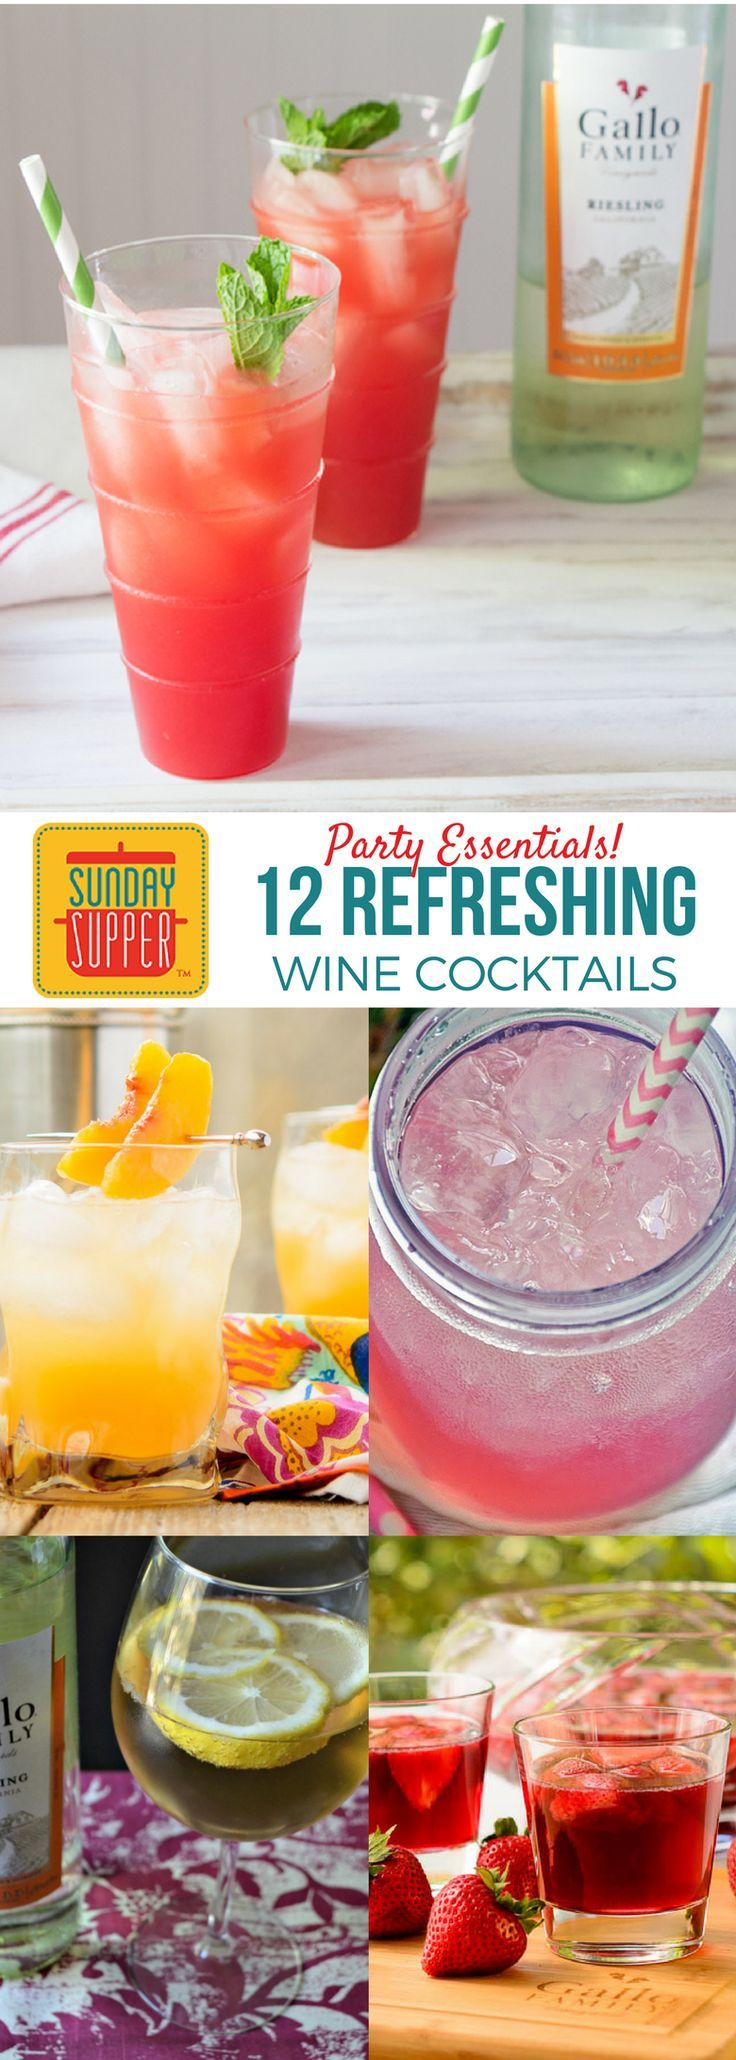 Simple mixed drinks are a must for any good party! These Sunday Supper recipes will teach you how to make mixed drinks and will keep your party going all night long! #SundaySupper #simplemixeddrinks